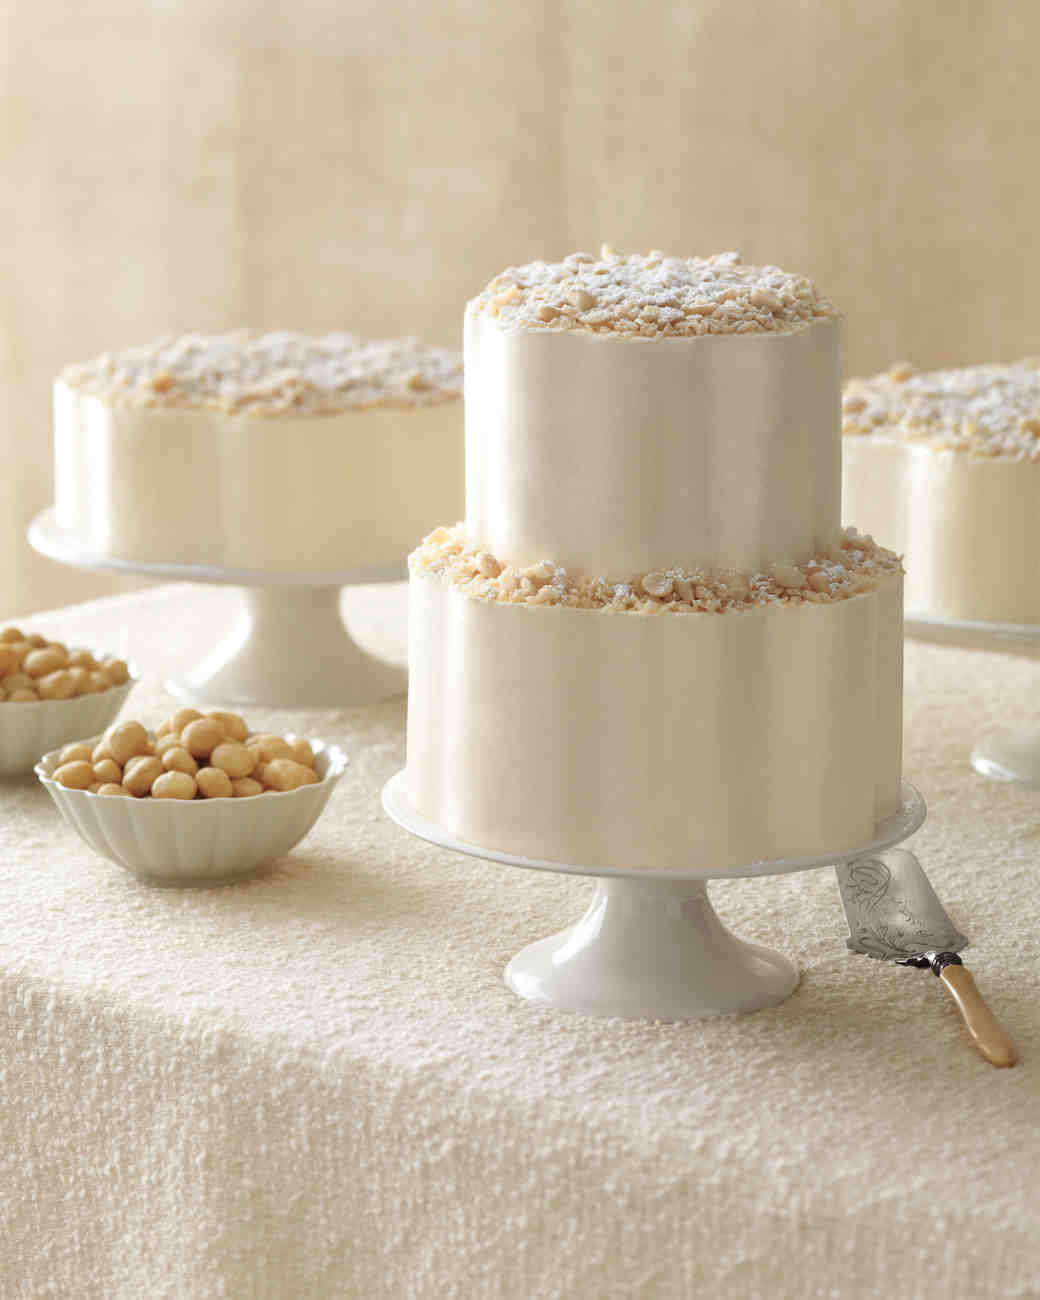 Two-Tiered White Wedding Cake Scattered with Nuts